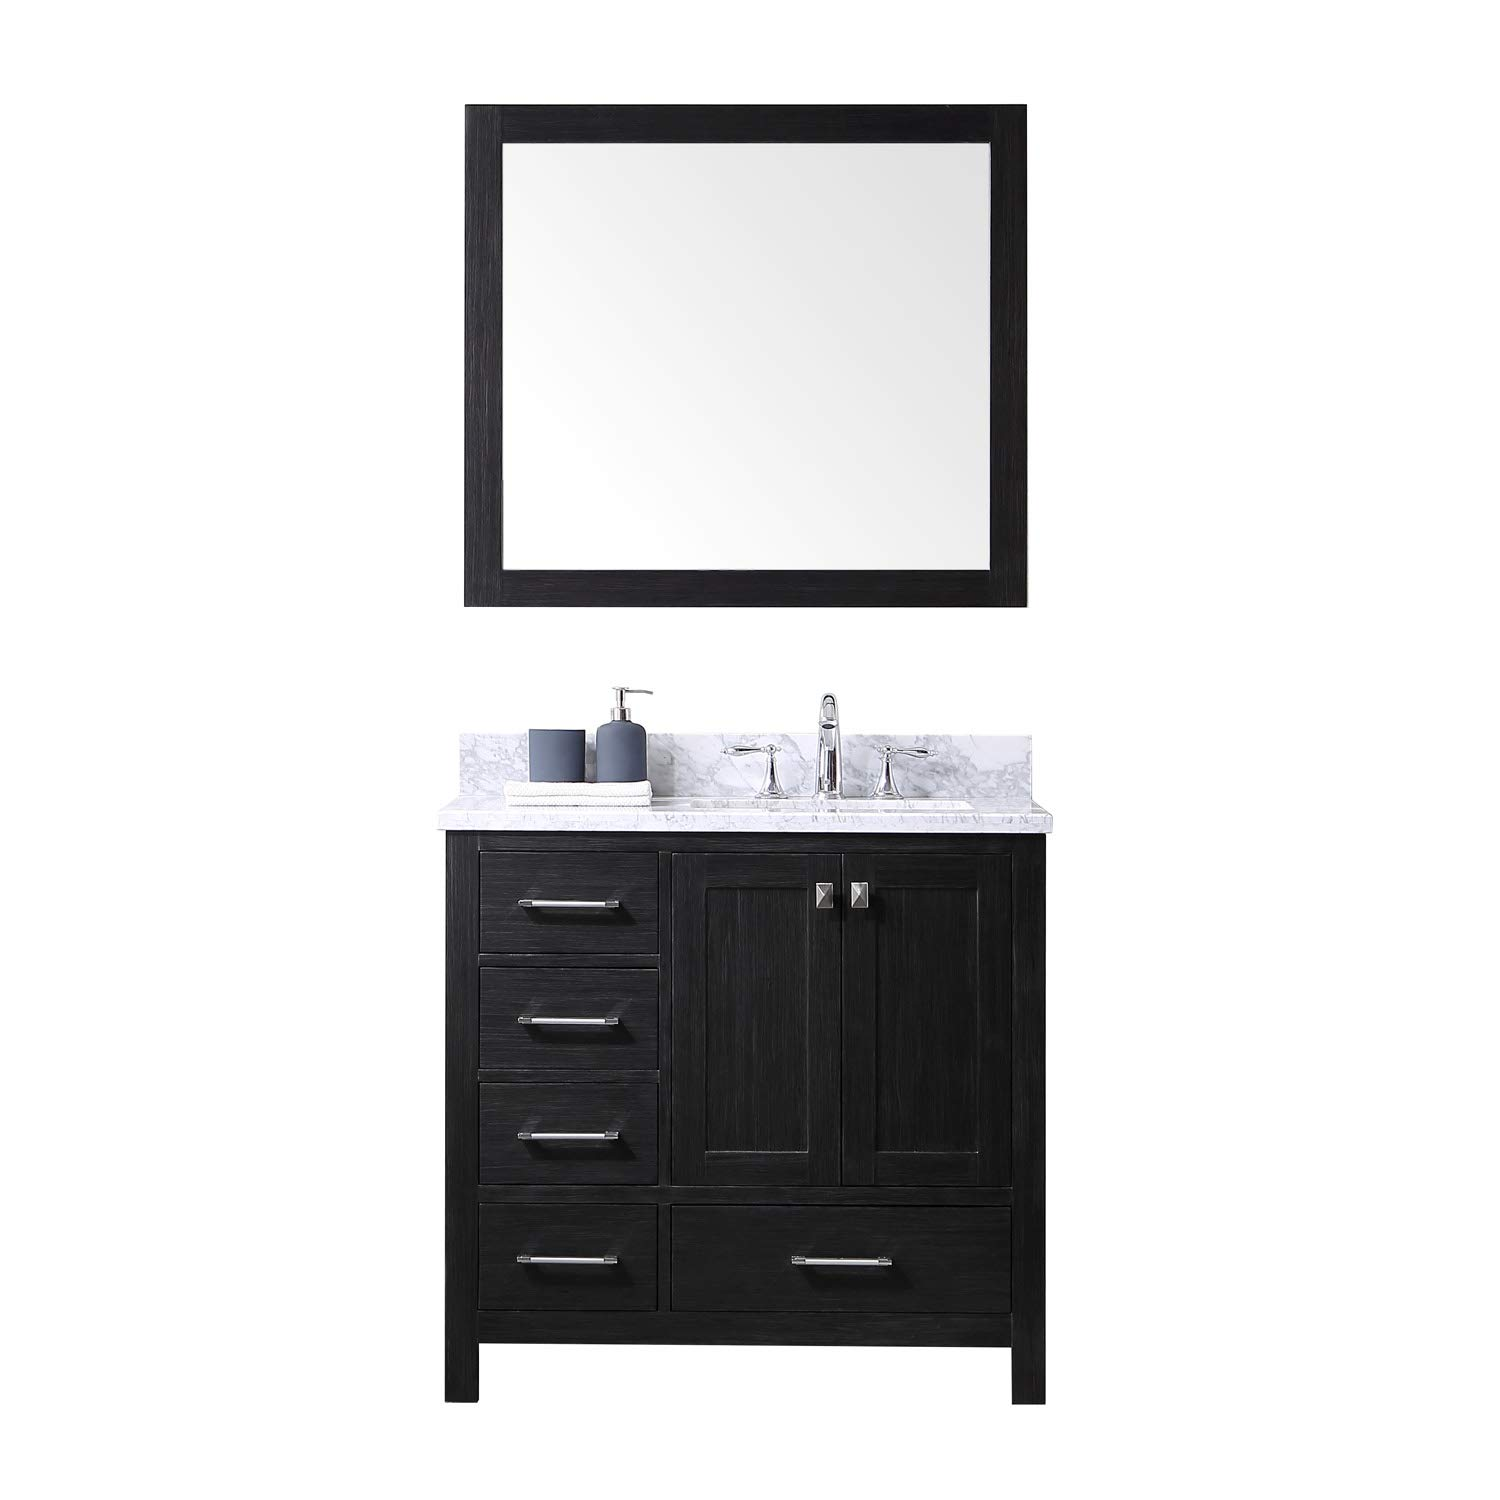 Virtu USA Premium KS-60036L-WMSQ-ZG Caroline Avenue Single Bathroom Vanity Cabinet Set, 36 , Zebra Grey, 36 inches, Gray